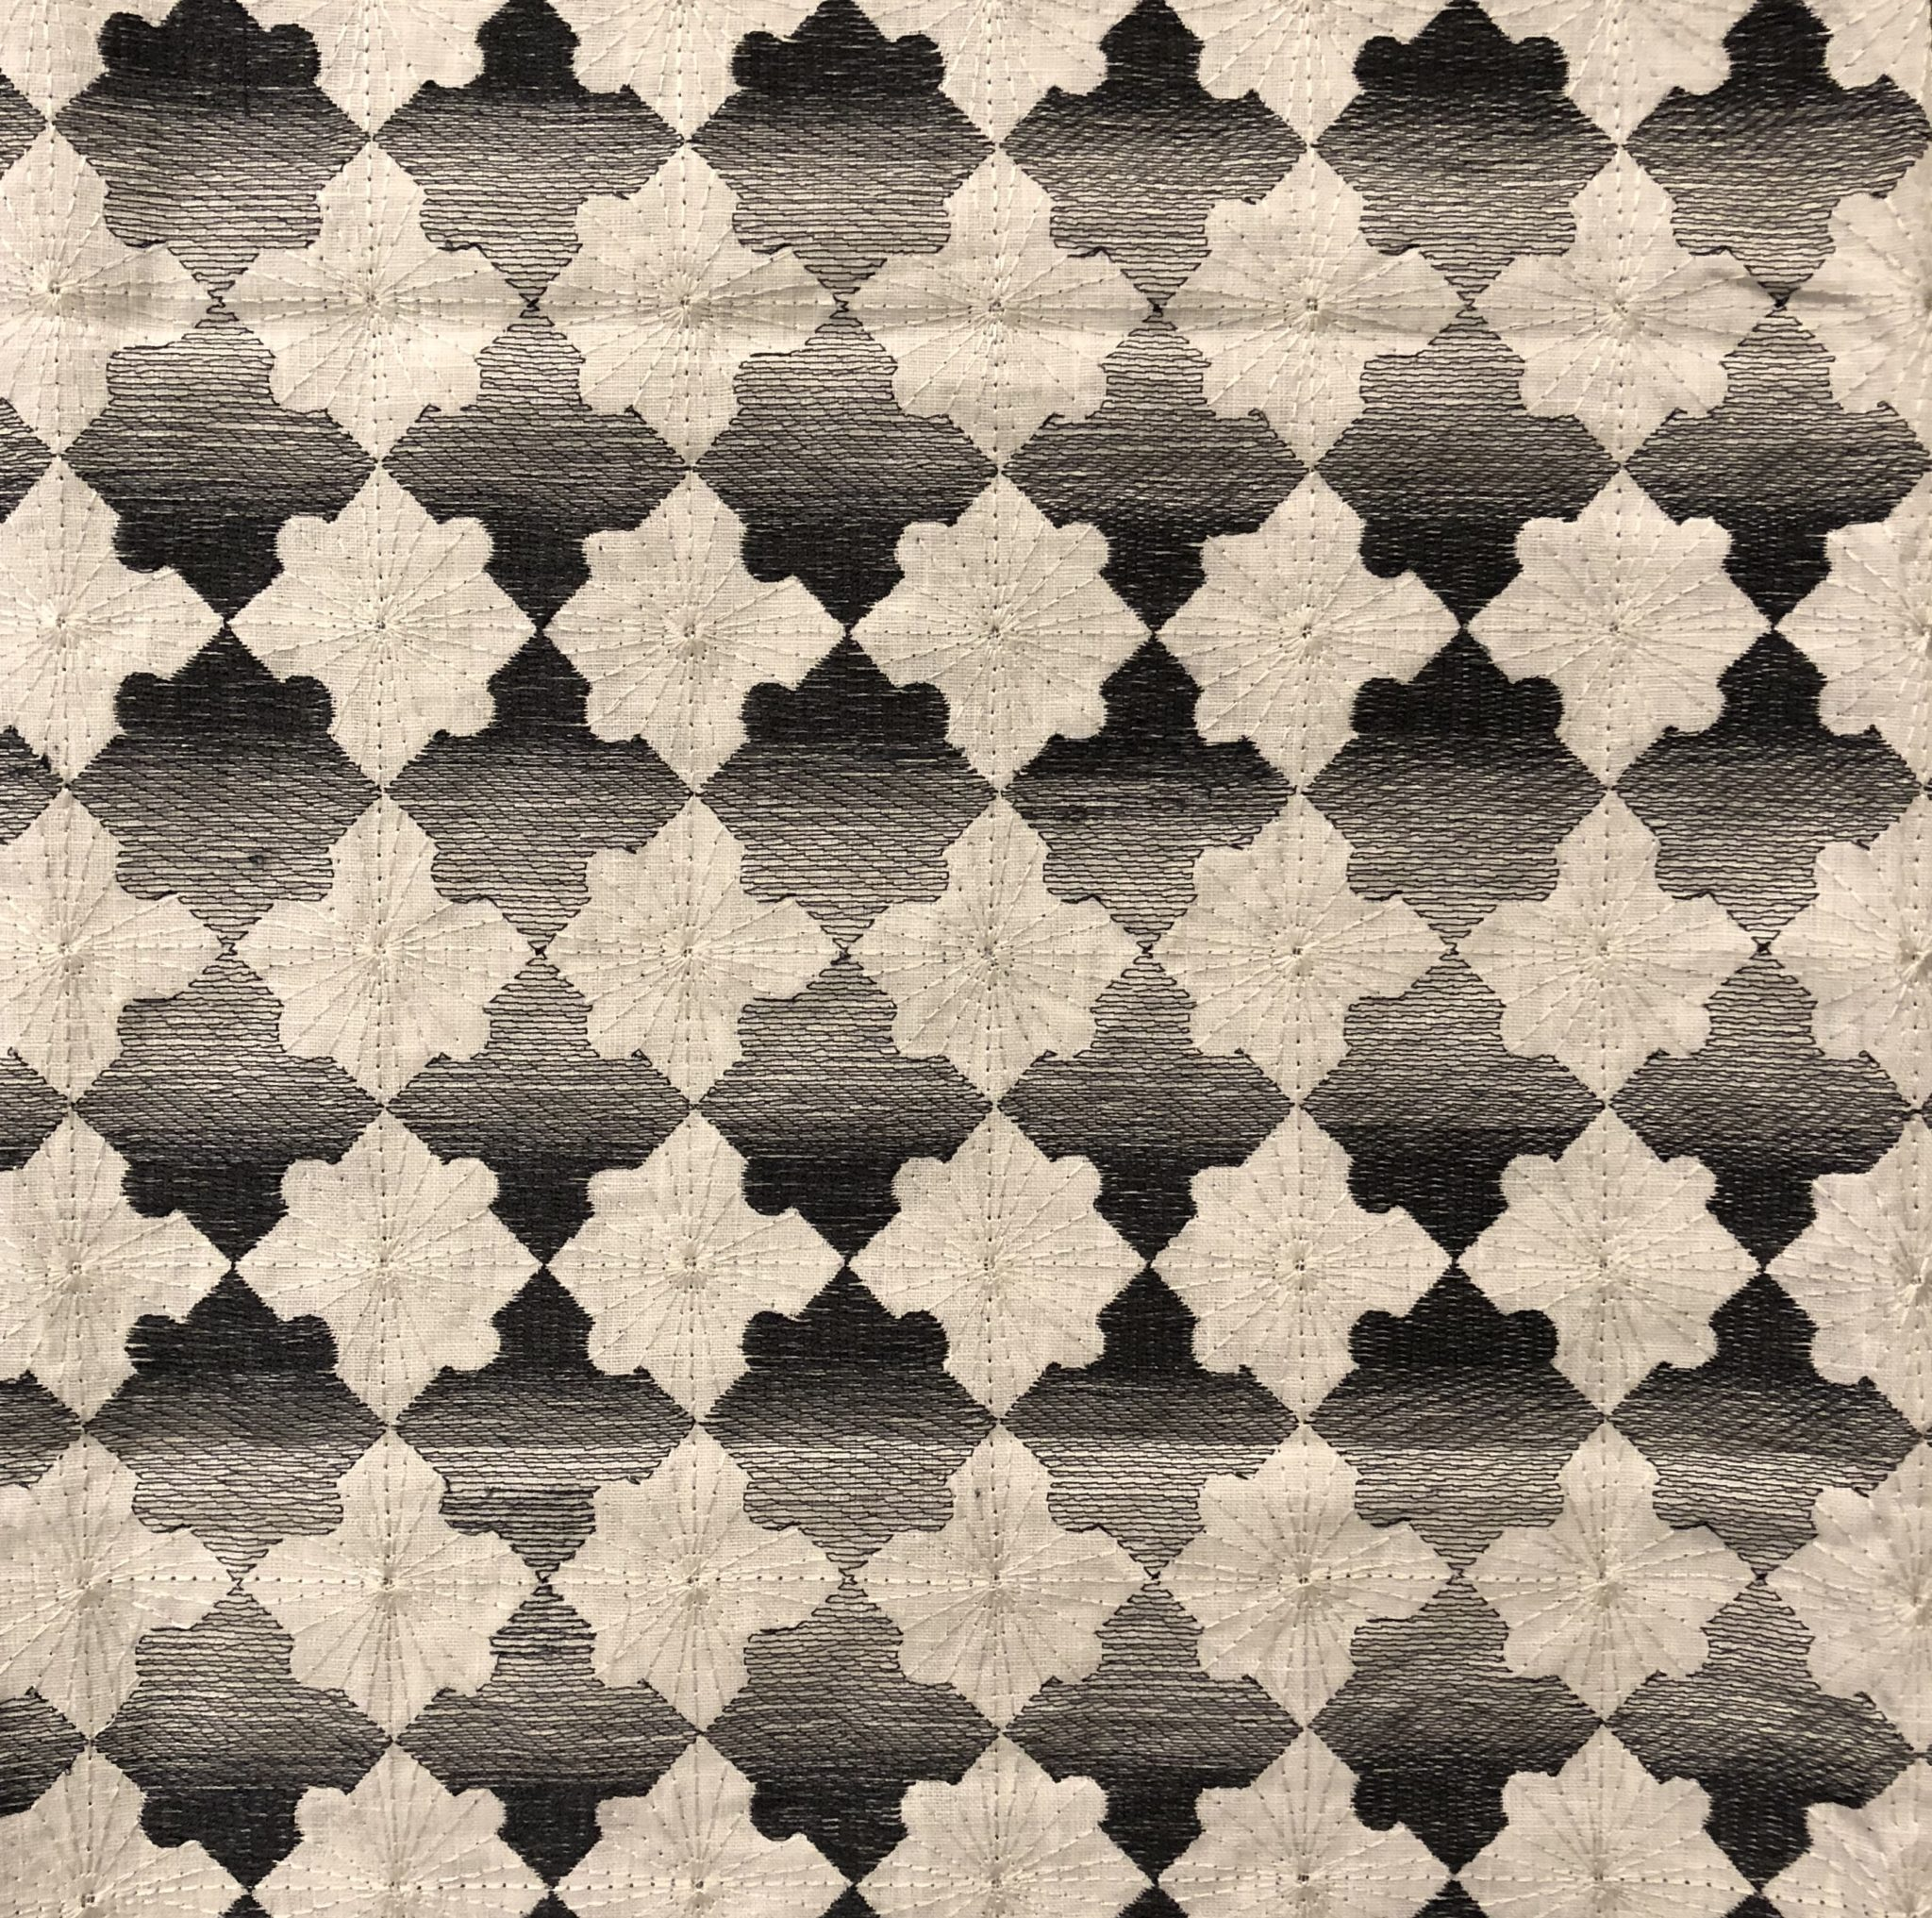 'Patchwork Marquetry' (83-251) in 100% linen from the David Collins Studio Collection for Baker